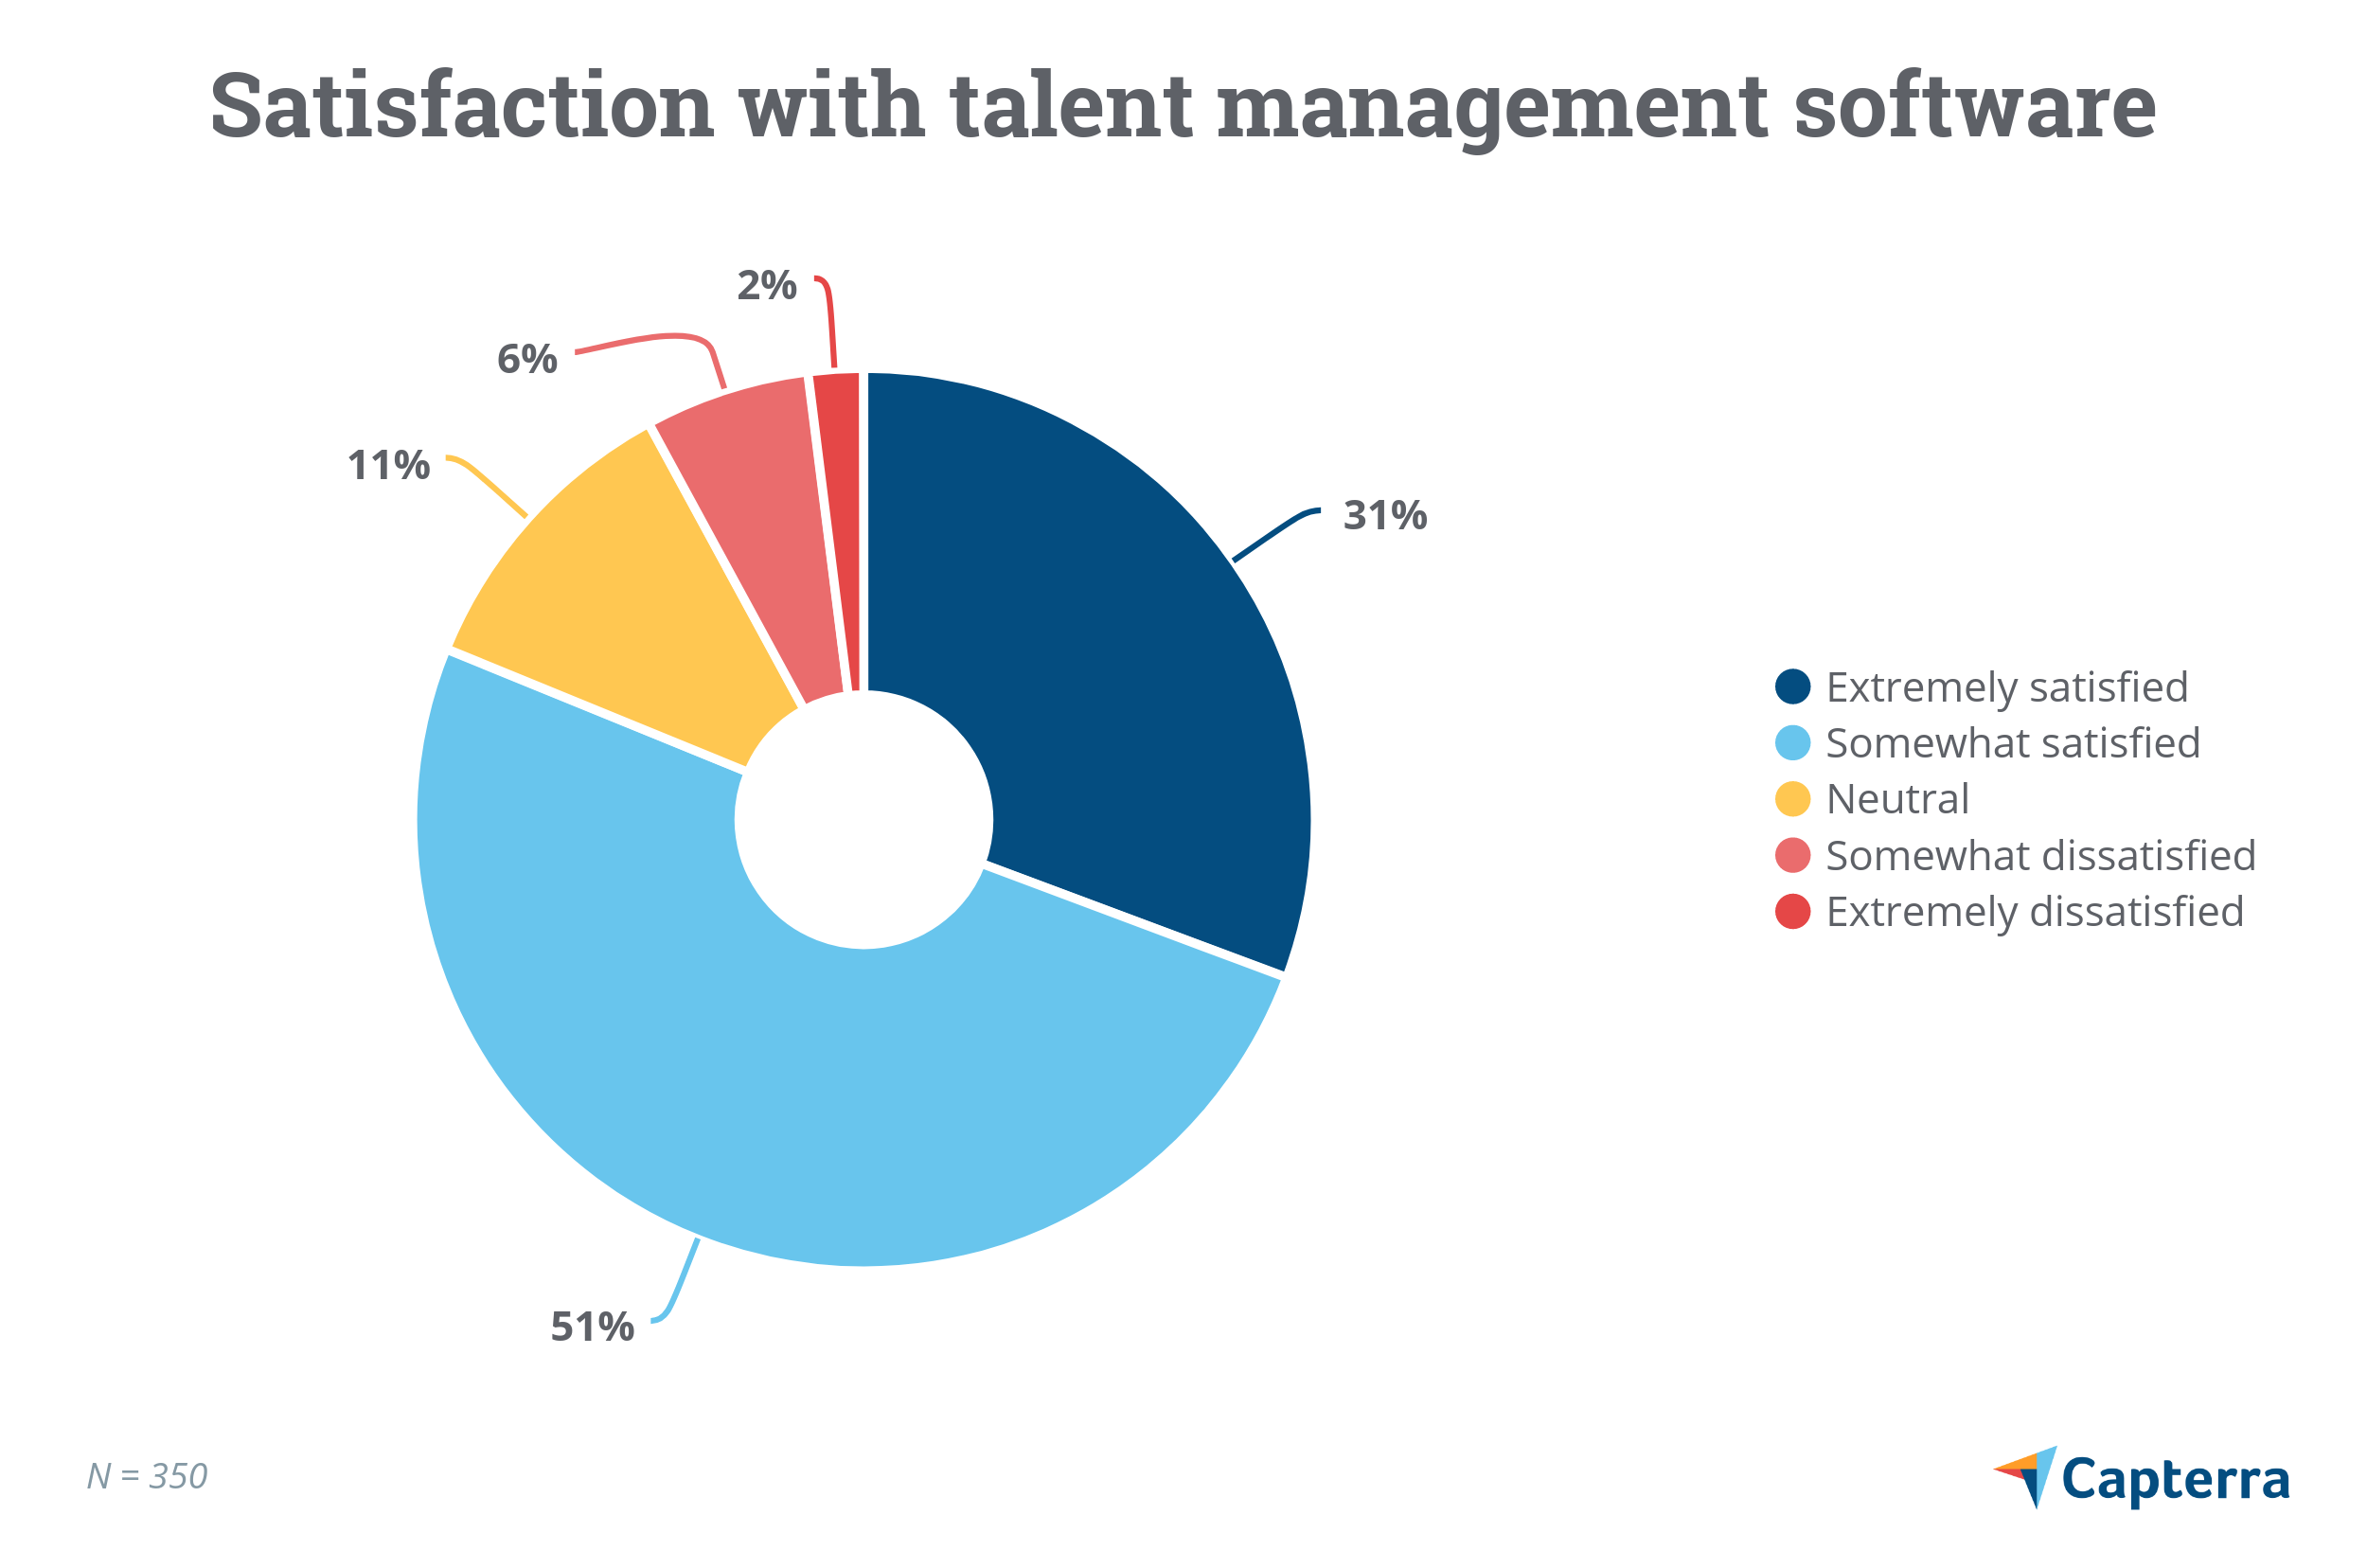 Satisfaction with talent management software